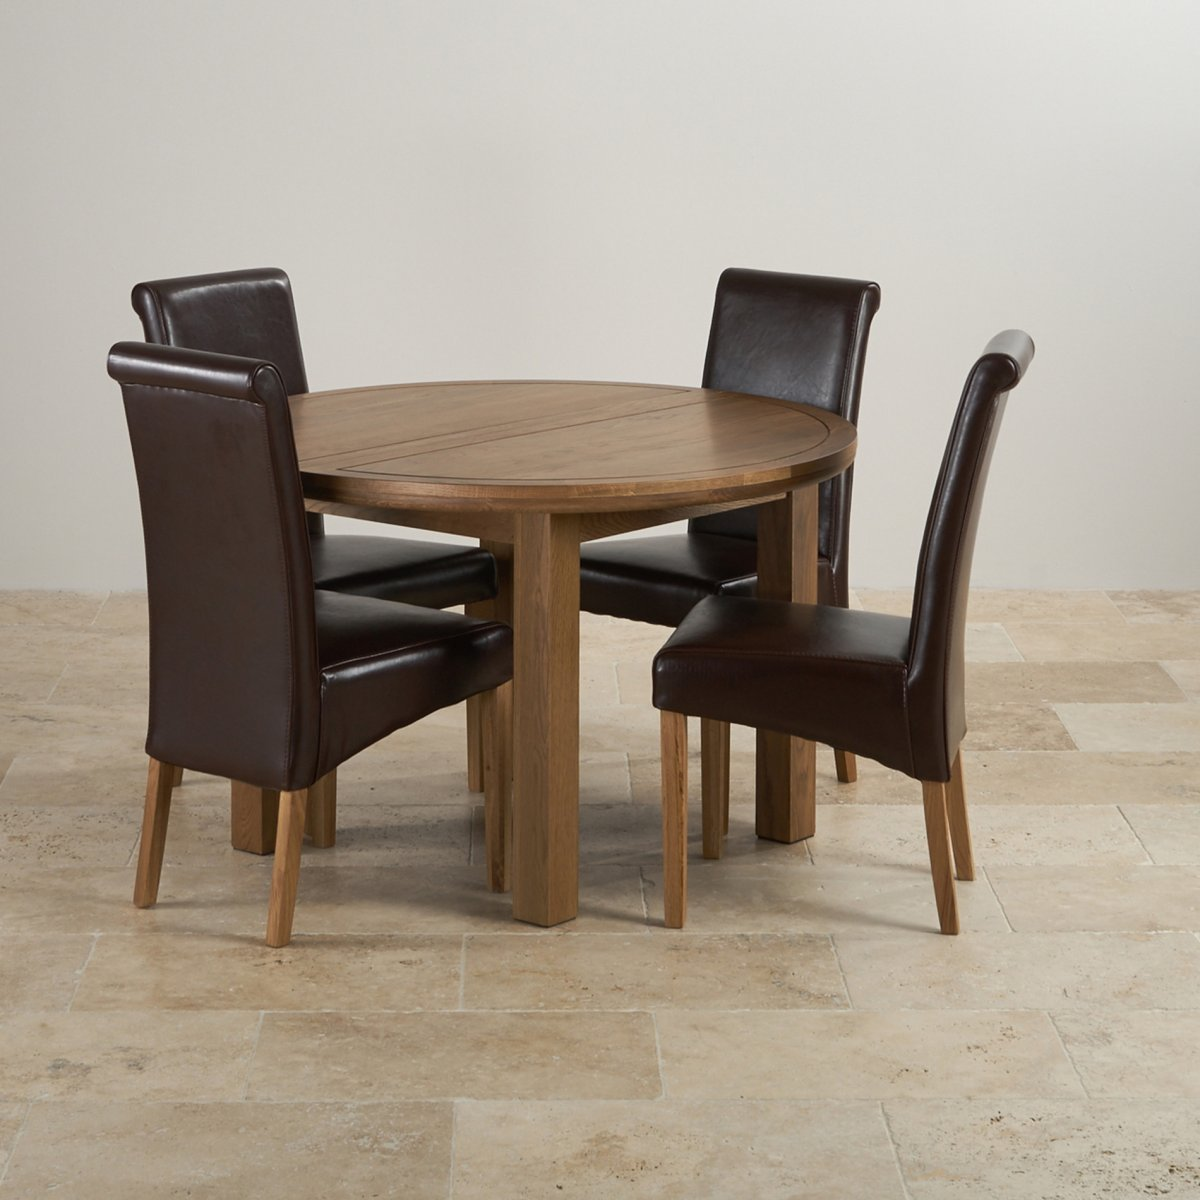 Dining Set Round Table: Knightsbridge Round Extending Dining Table Set: Table + 4